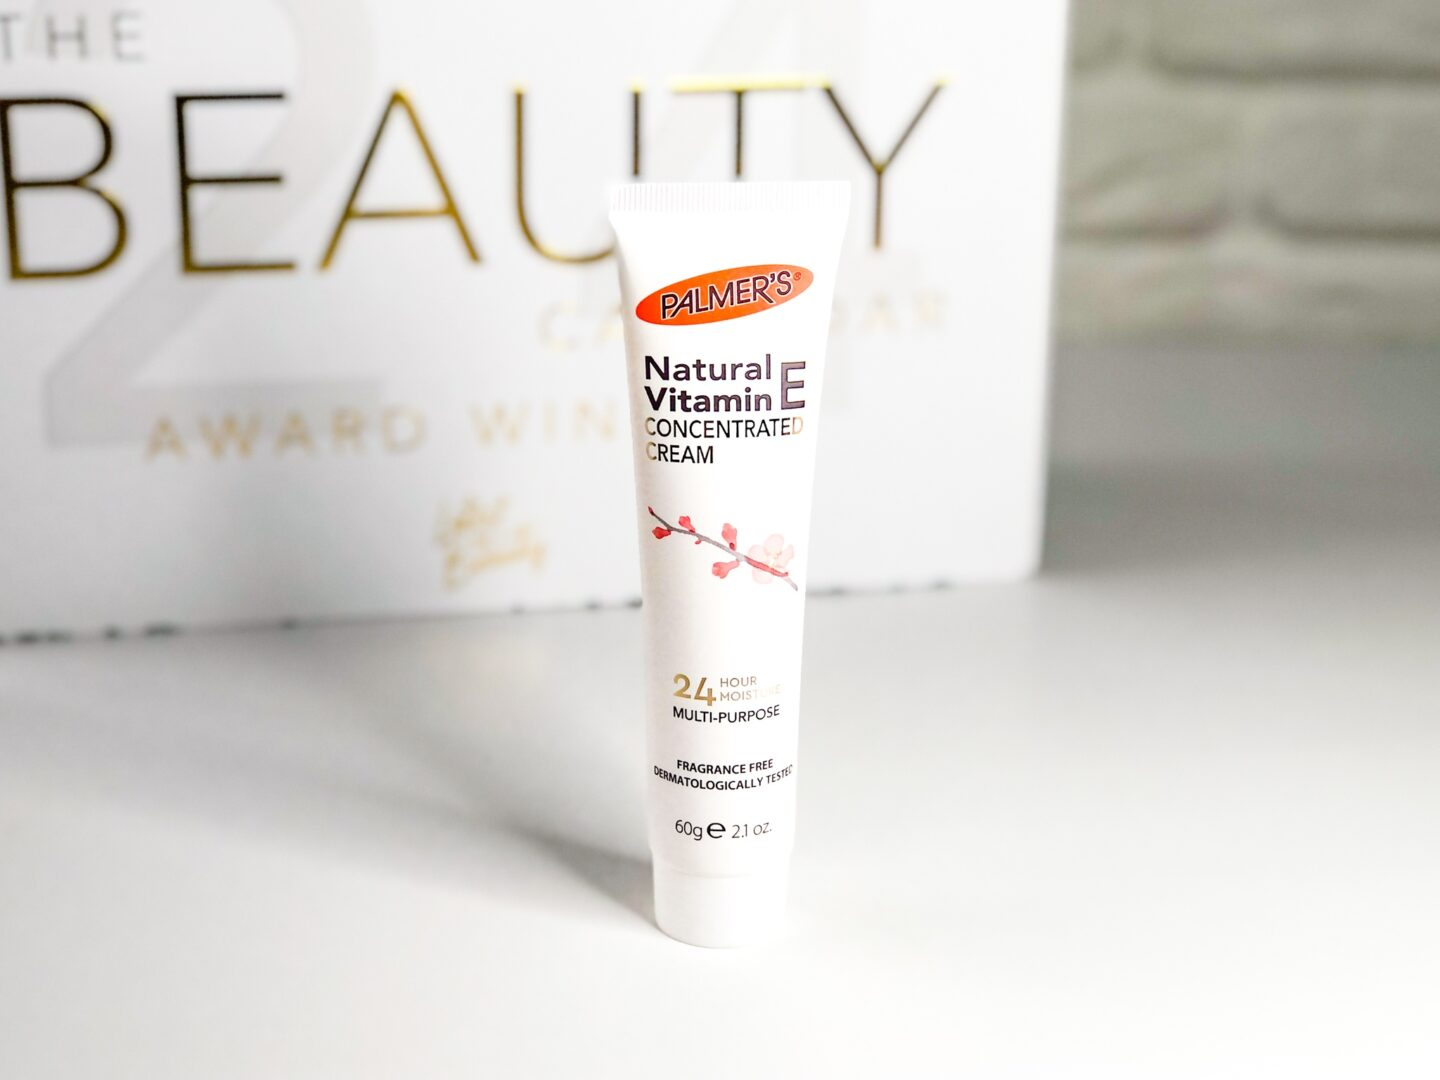 Palmer's Natural Vitamin E Concentrated Cream - Beauty Calendar: The Award Winners